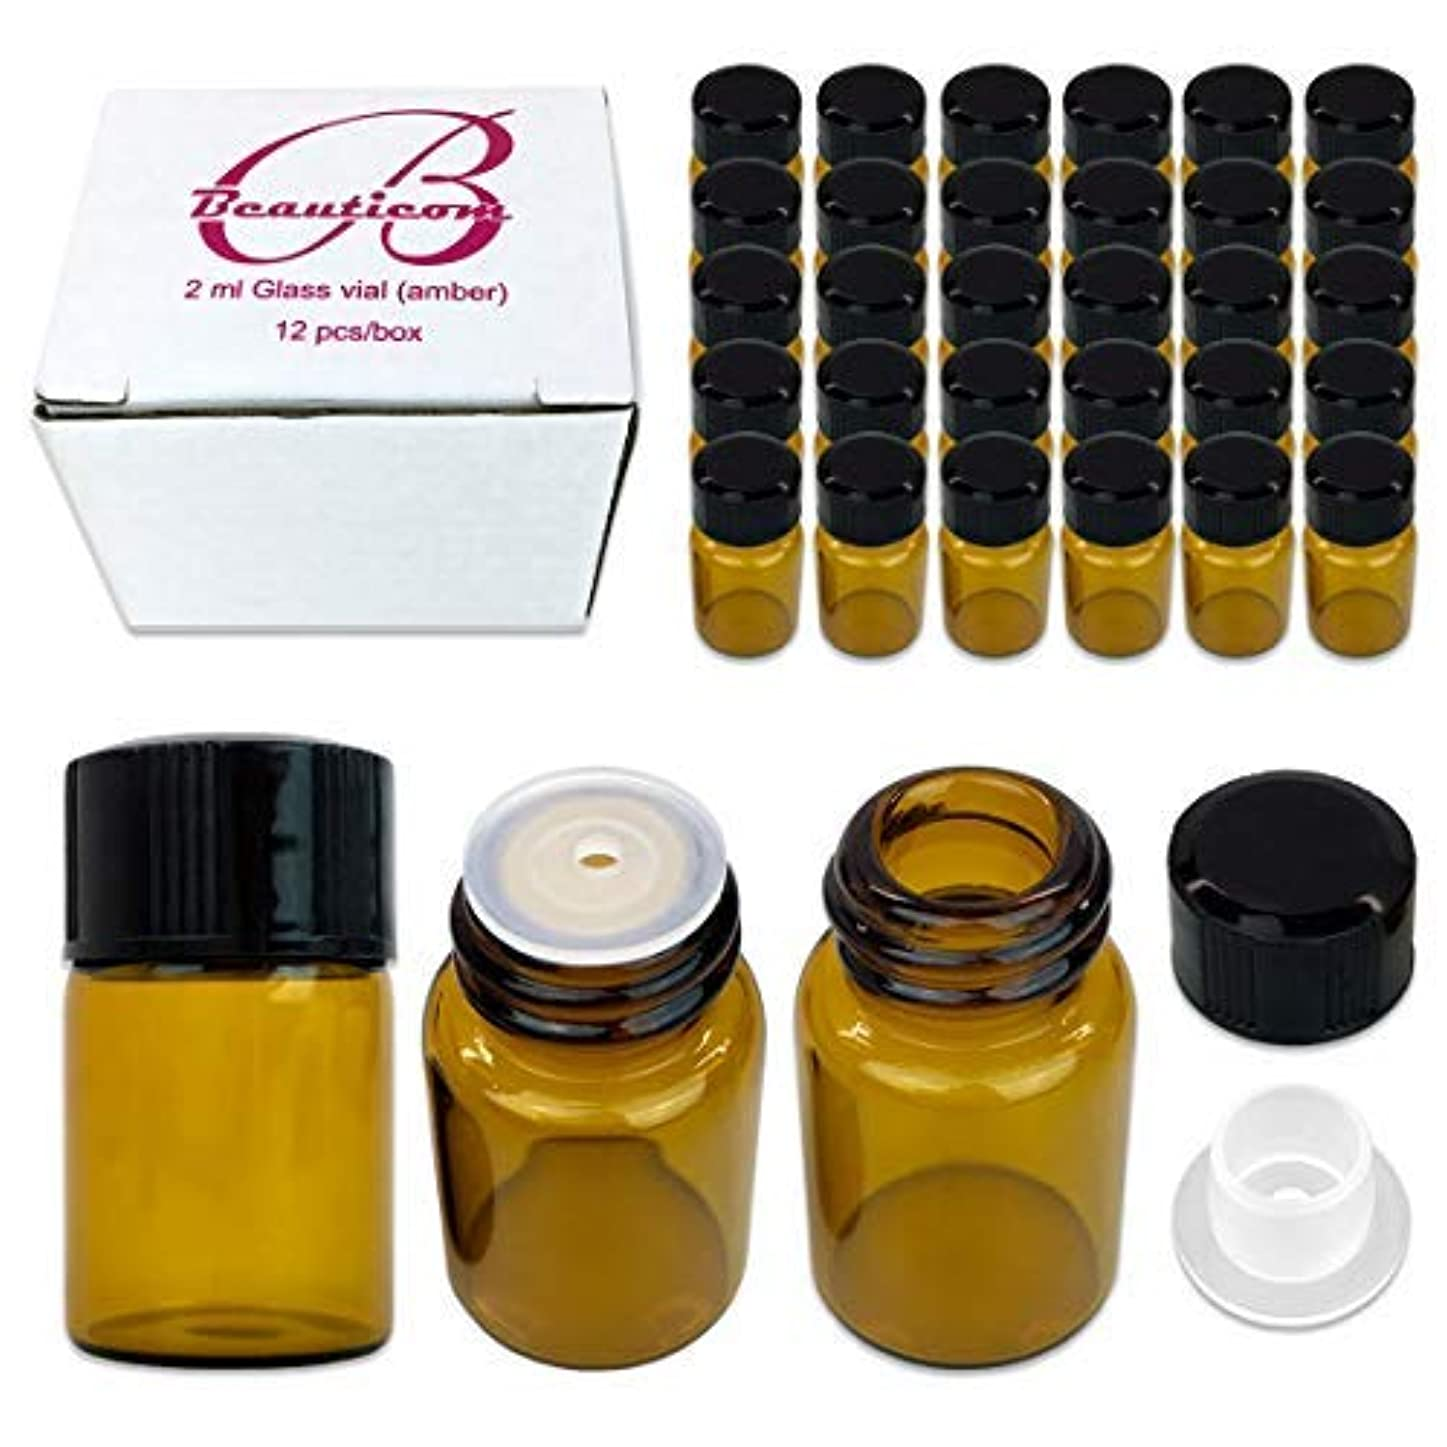 良さカバー否定する48 Packs Beauticom 2ML Amber Glass Vial for Essential Oils, Aromatherapy, Fragrance, Serums, Spritzes, with Orifice...